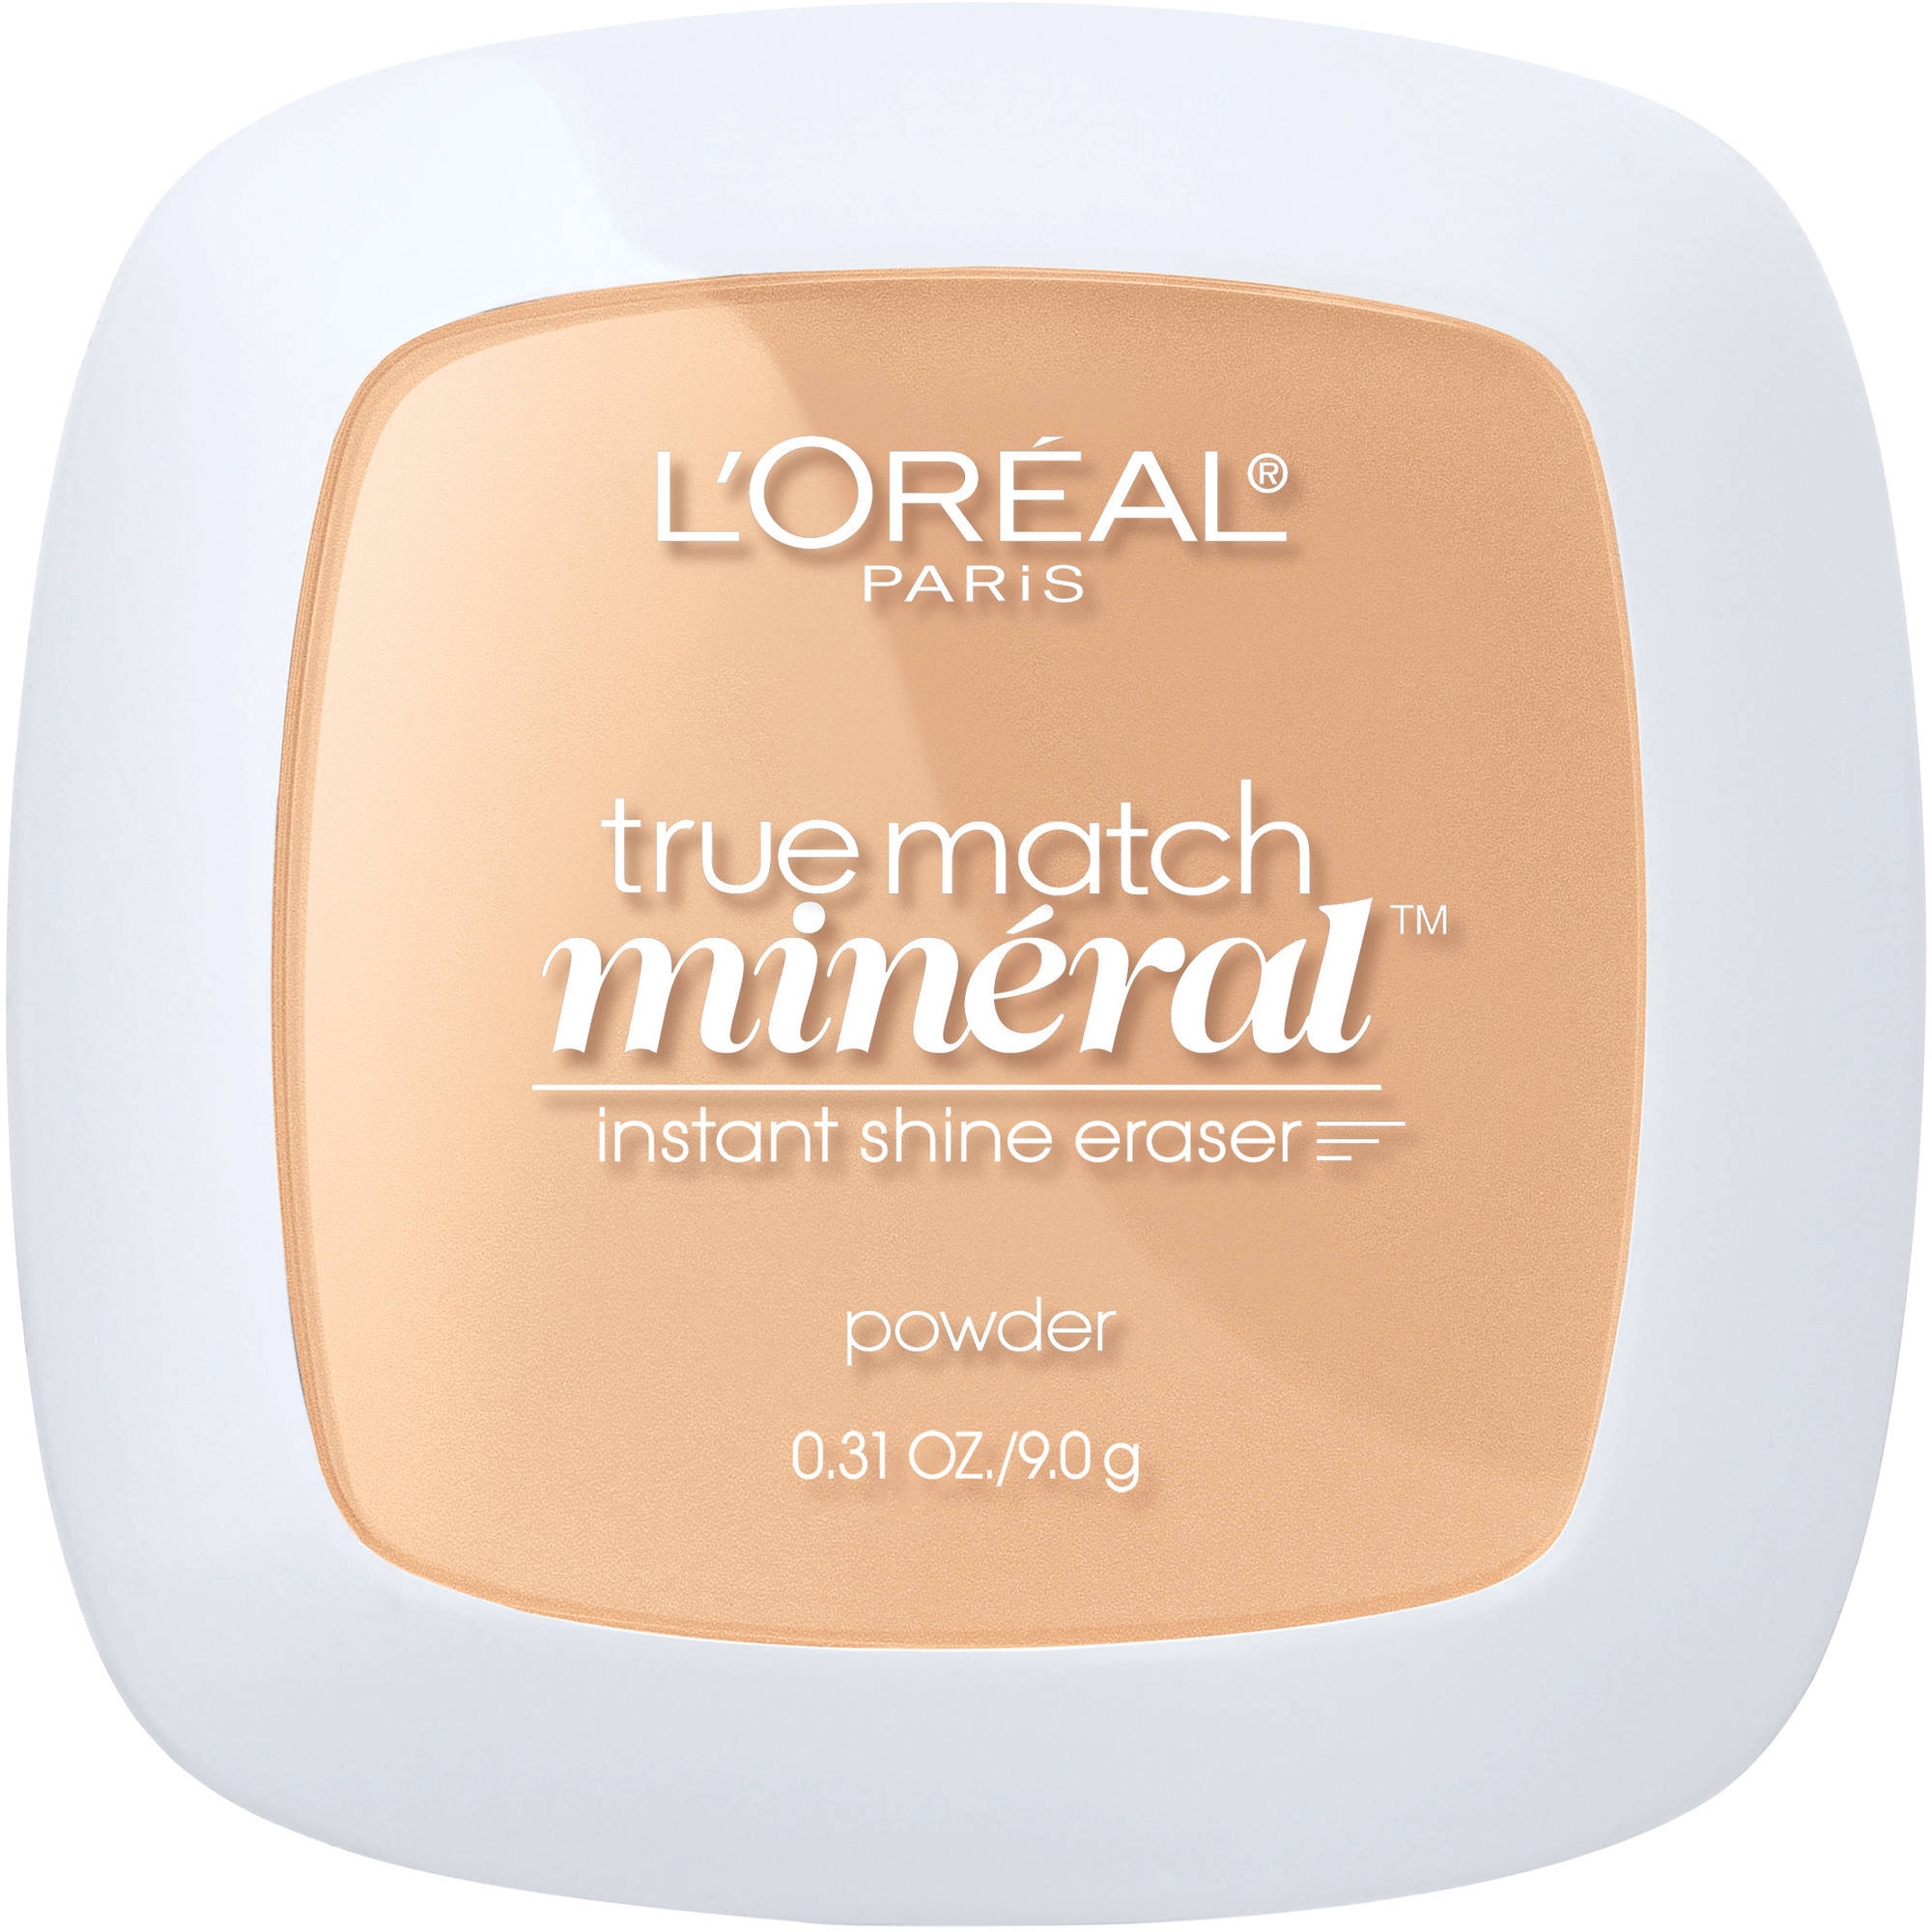 L'Oreal Paris True Match Mineral Shine Eraser Face Powder, 0.31 oz